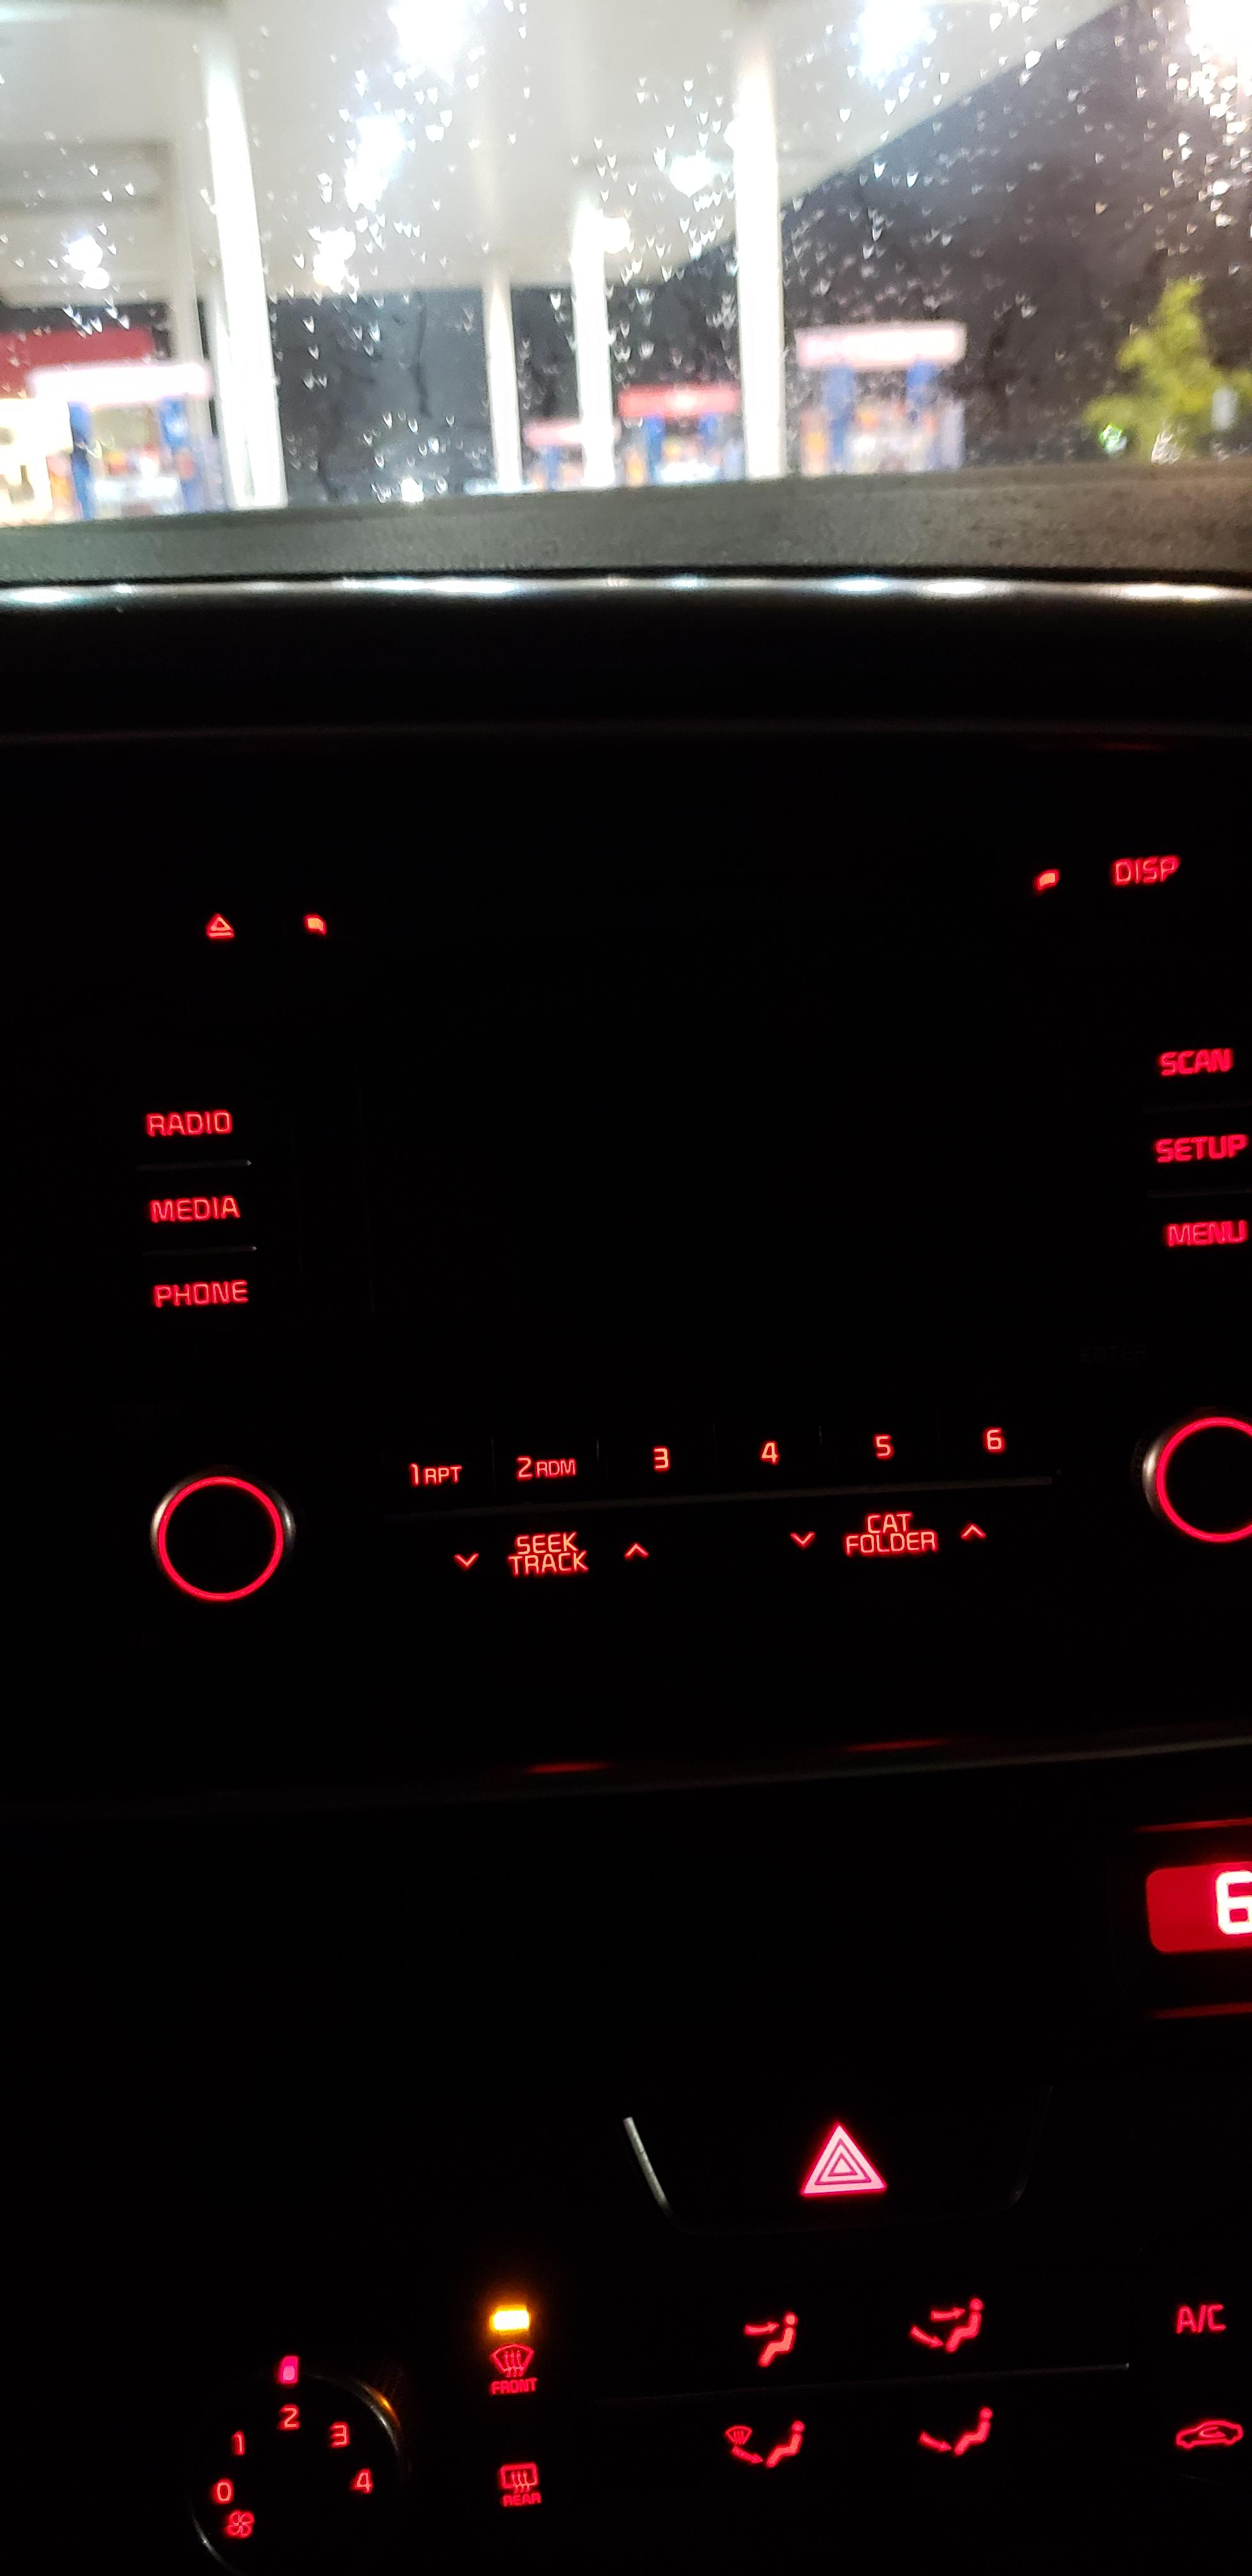 Car Radio Screen Blank Problem : radio, screen, blank, problem, Radio, Optima, Dead., Turned, Leave, Today, Noticed, Screen, Completely, Black., Theres, Sound, Anything